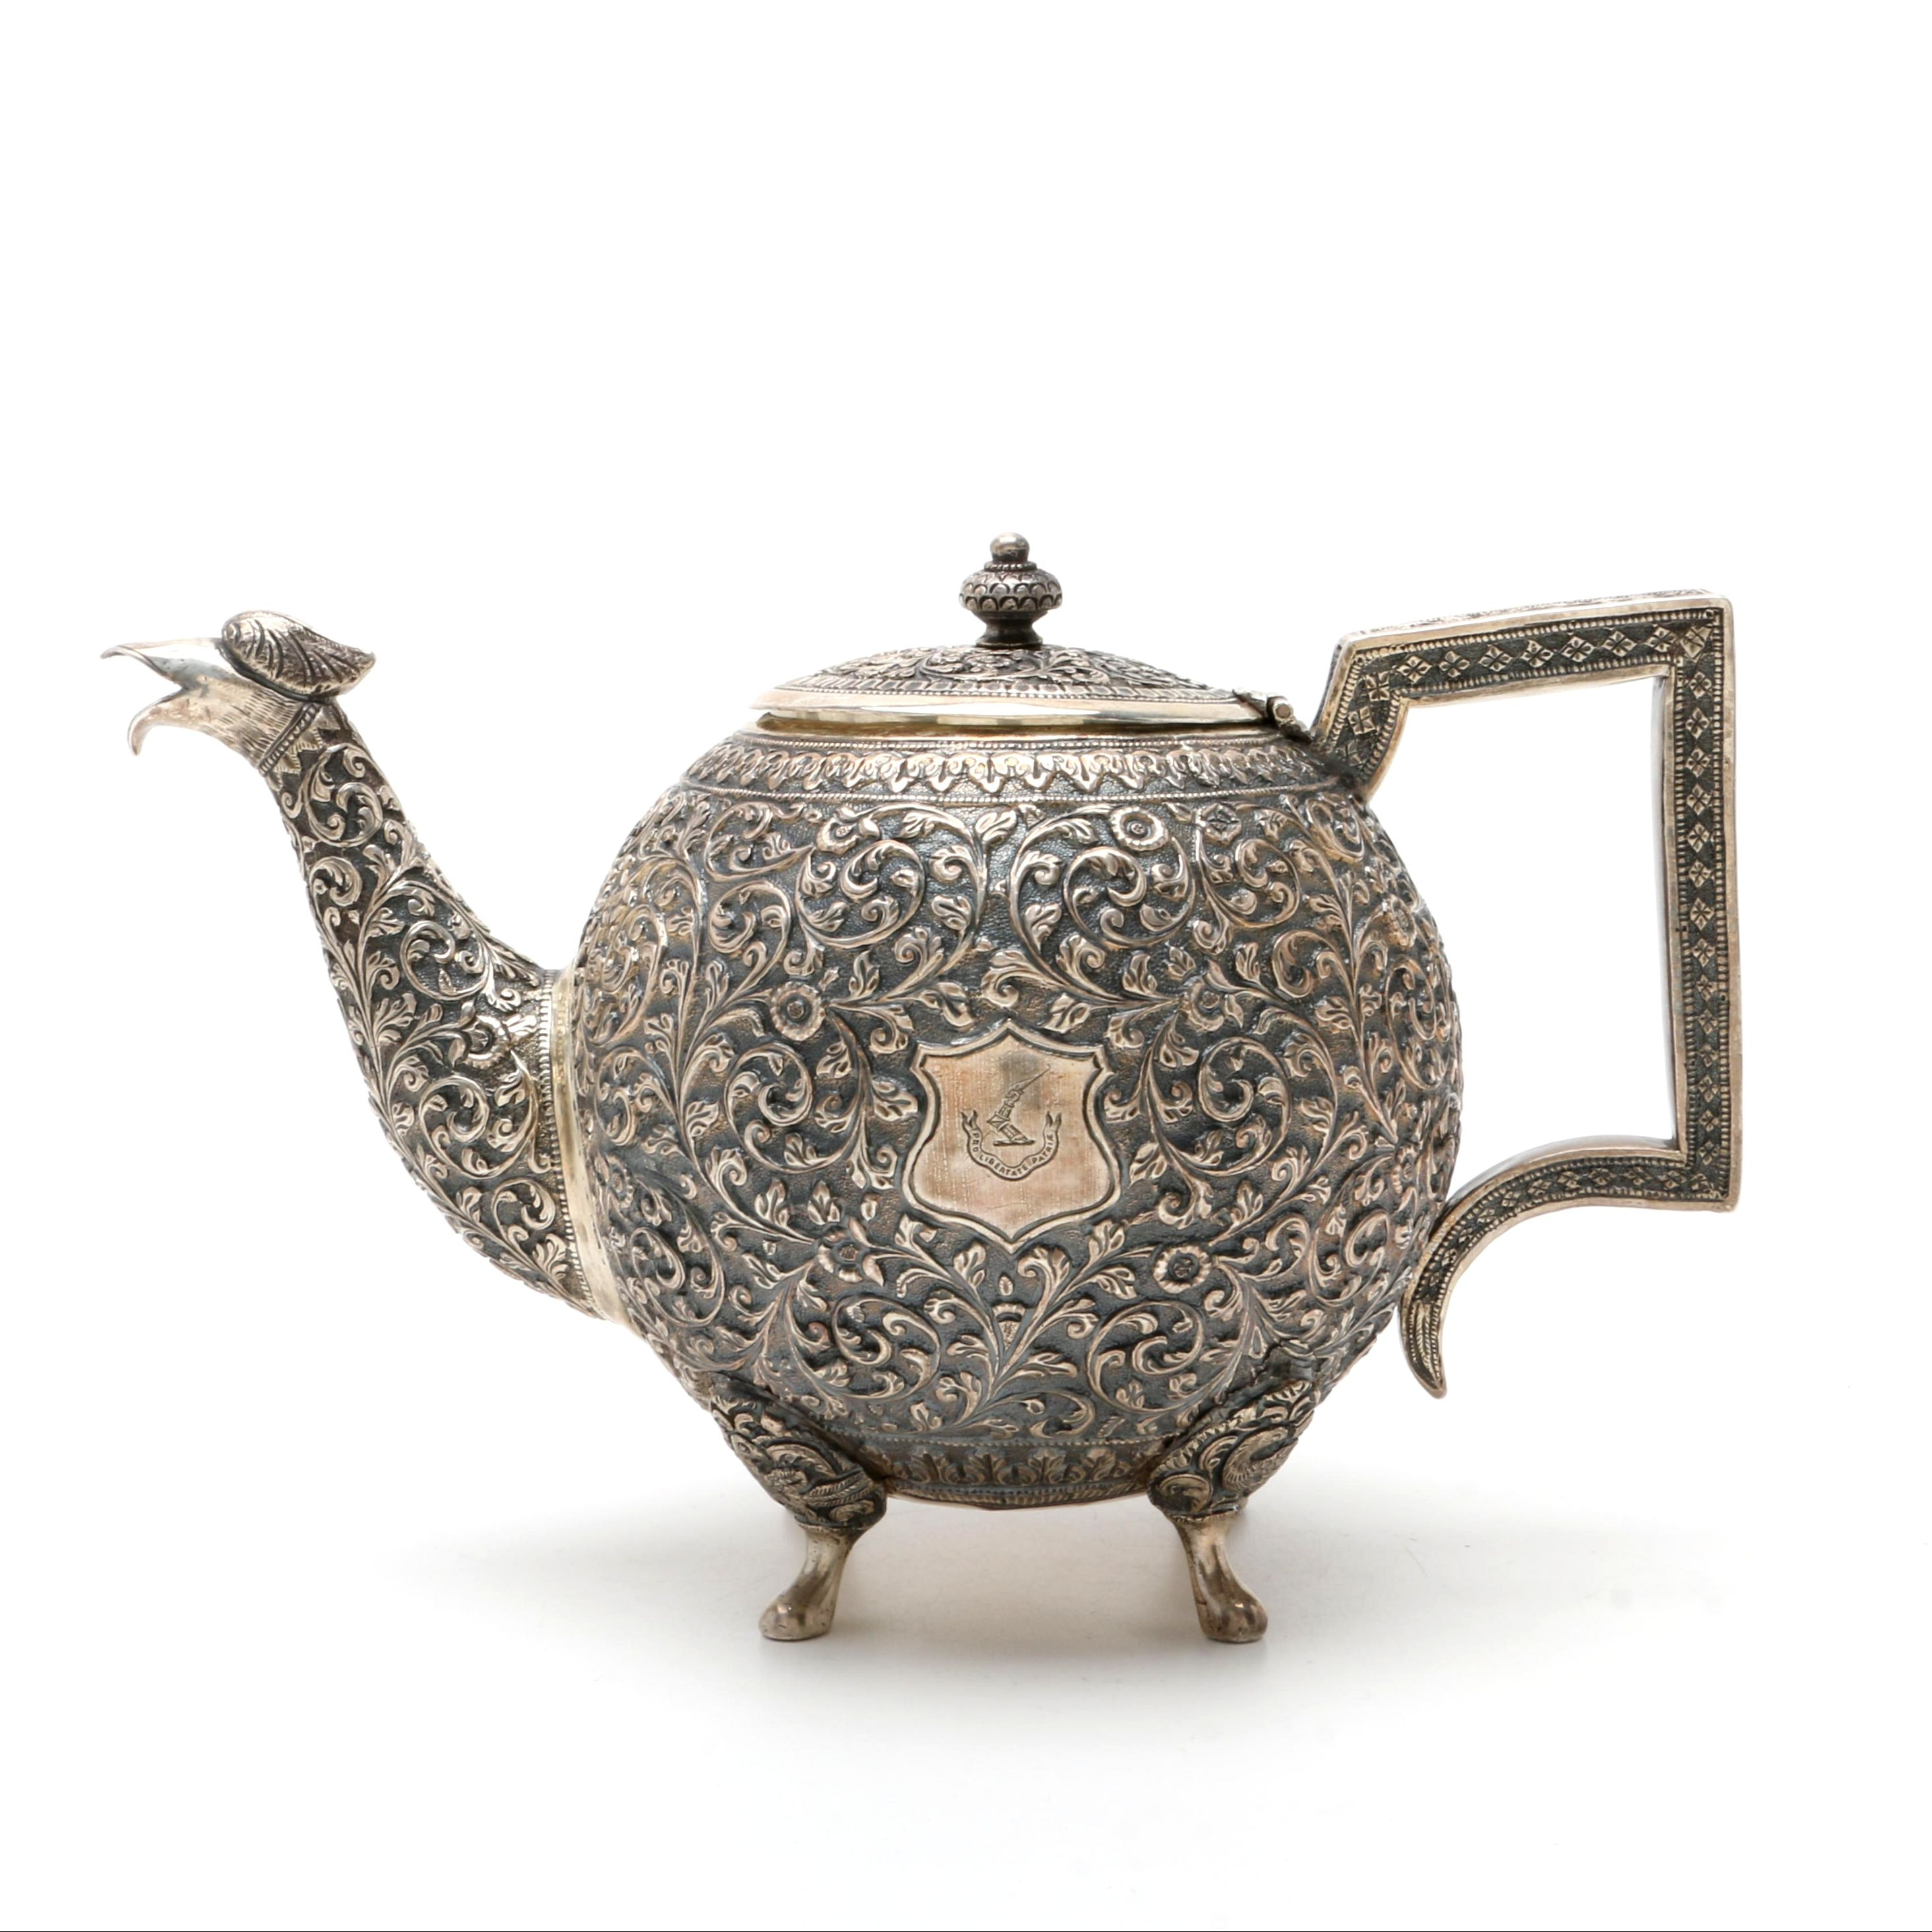 Antique Anglo-Indian Kutch Sterling Silver Repoussé Teapot